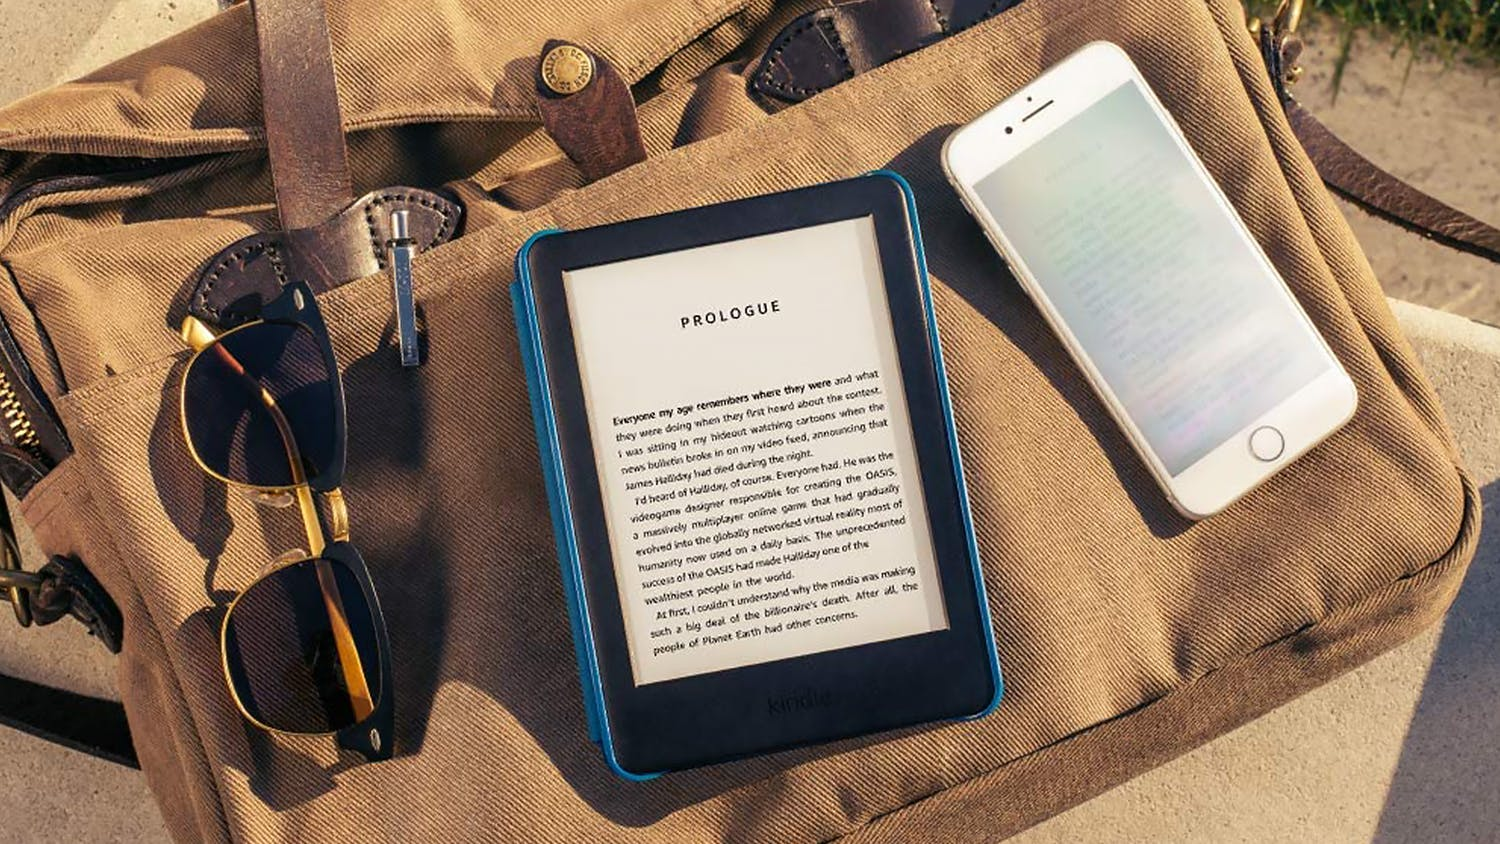 Amazon Kindle Touch (2019) - Wi-Fi